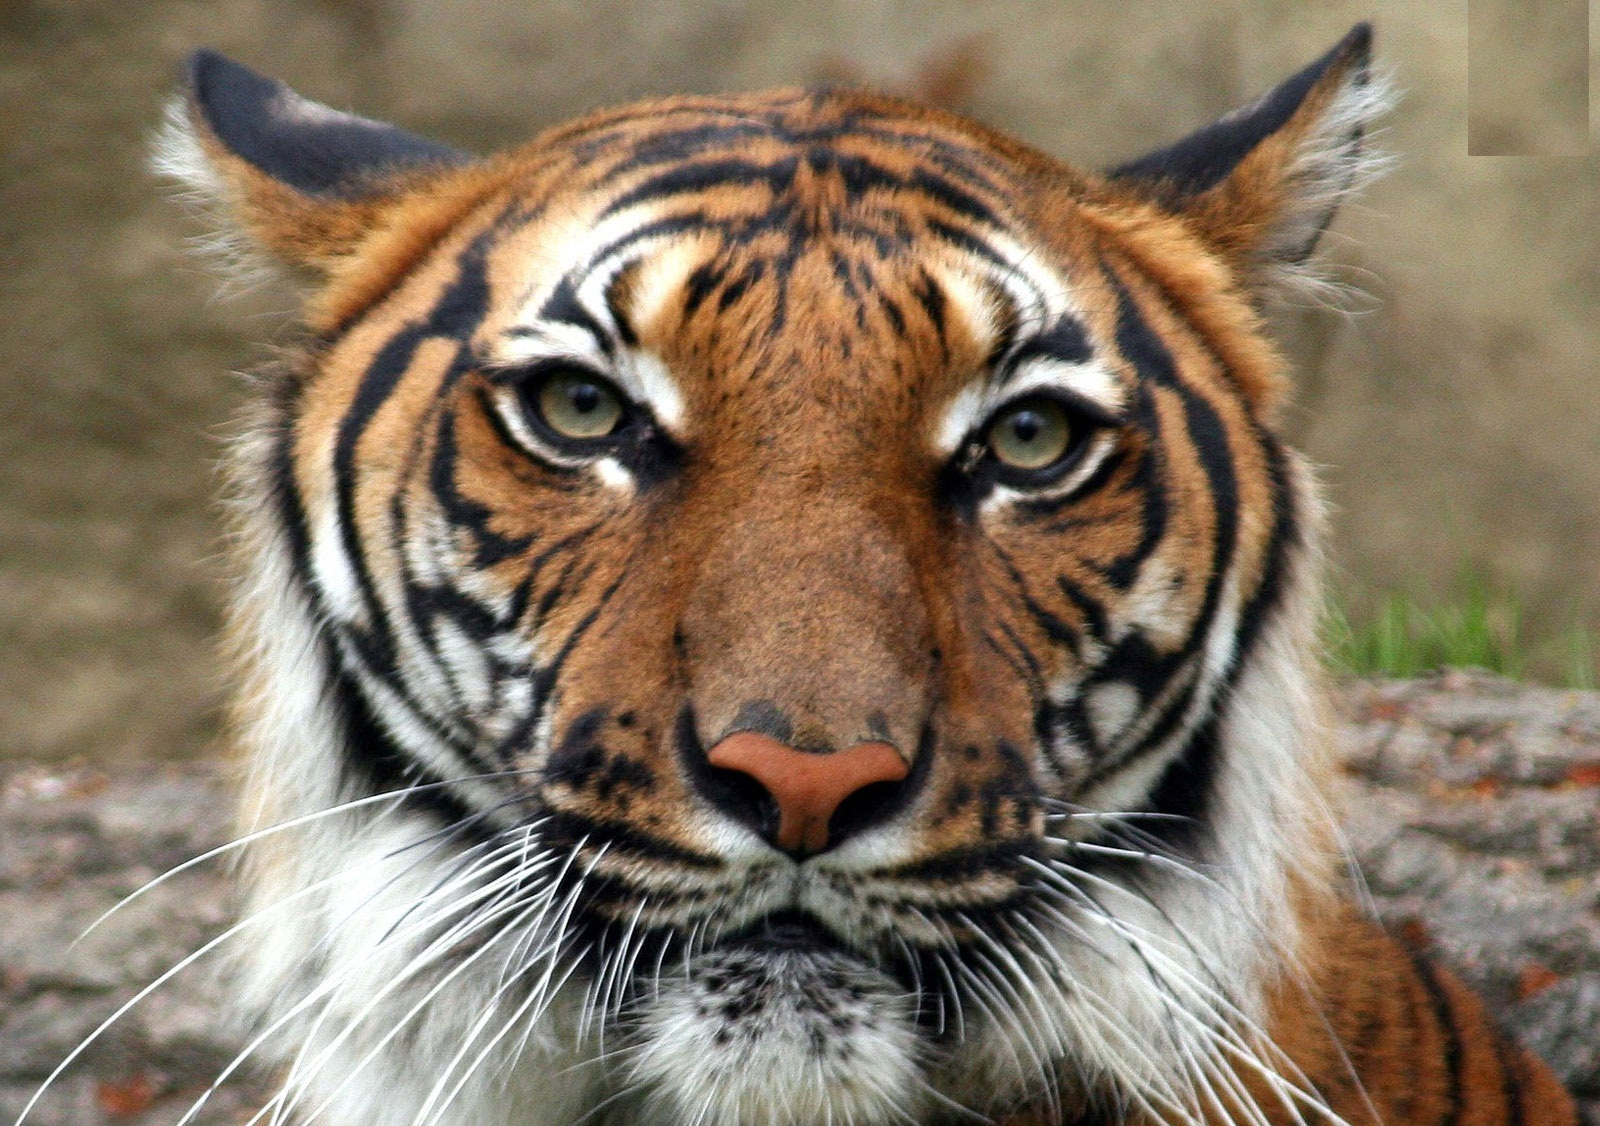 The Indochinese Tiger is found in areas of Vietnam